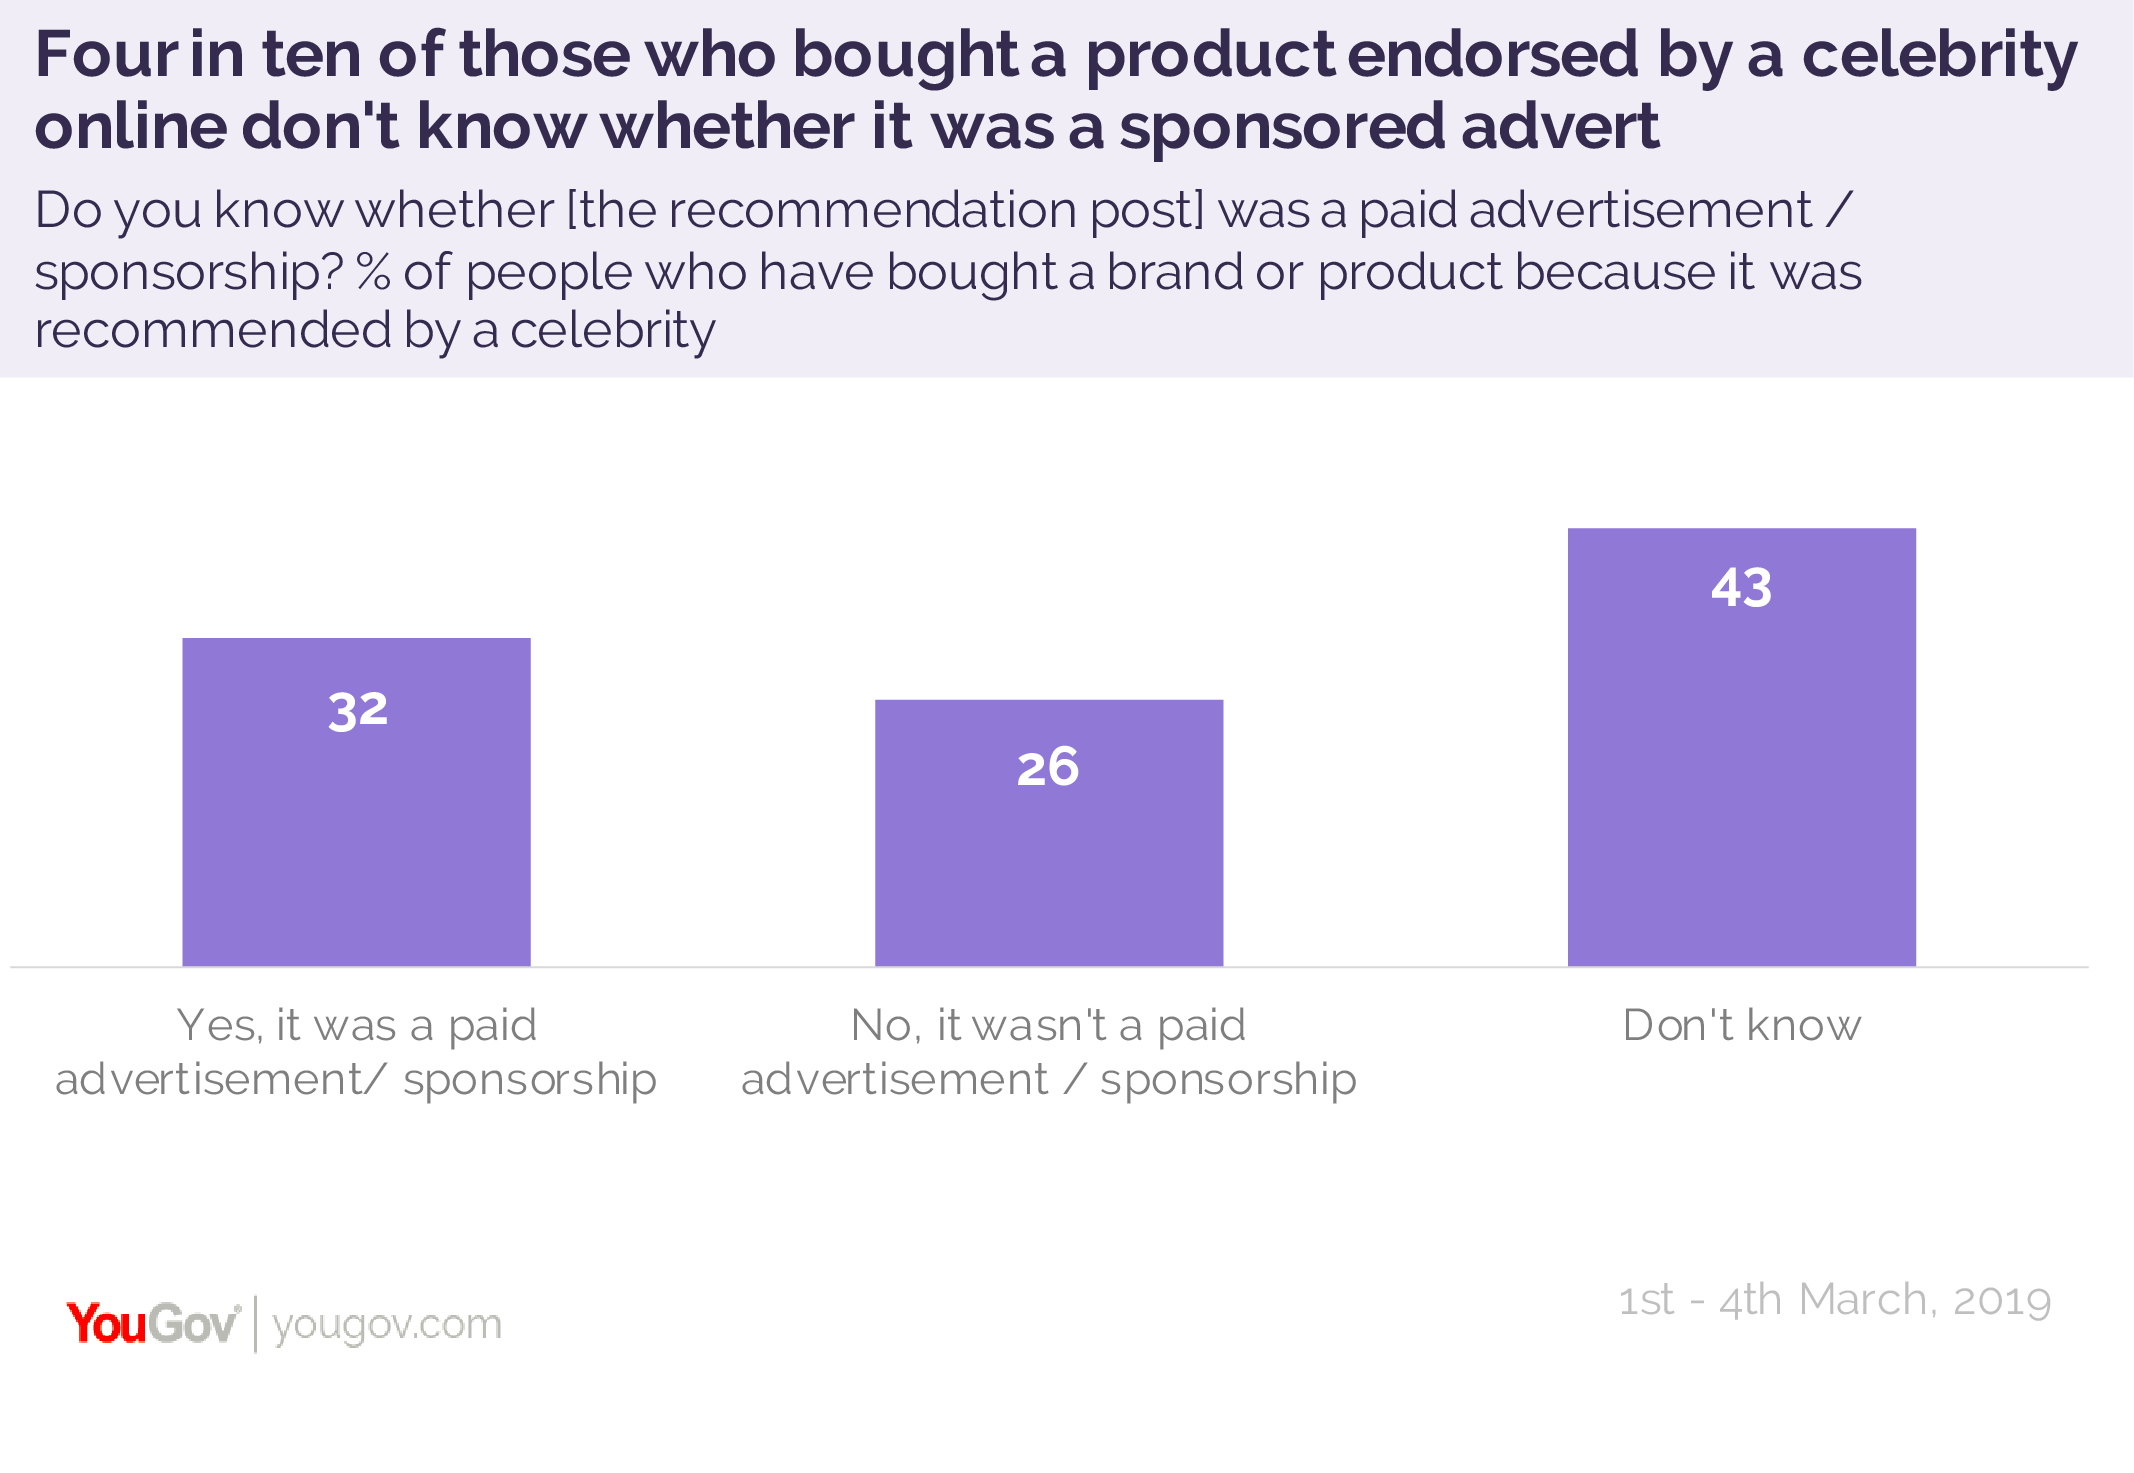 Britons less likely to trust sponsored posts on social media | YouGov